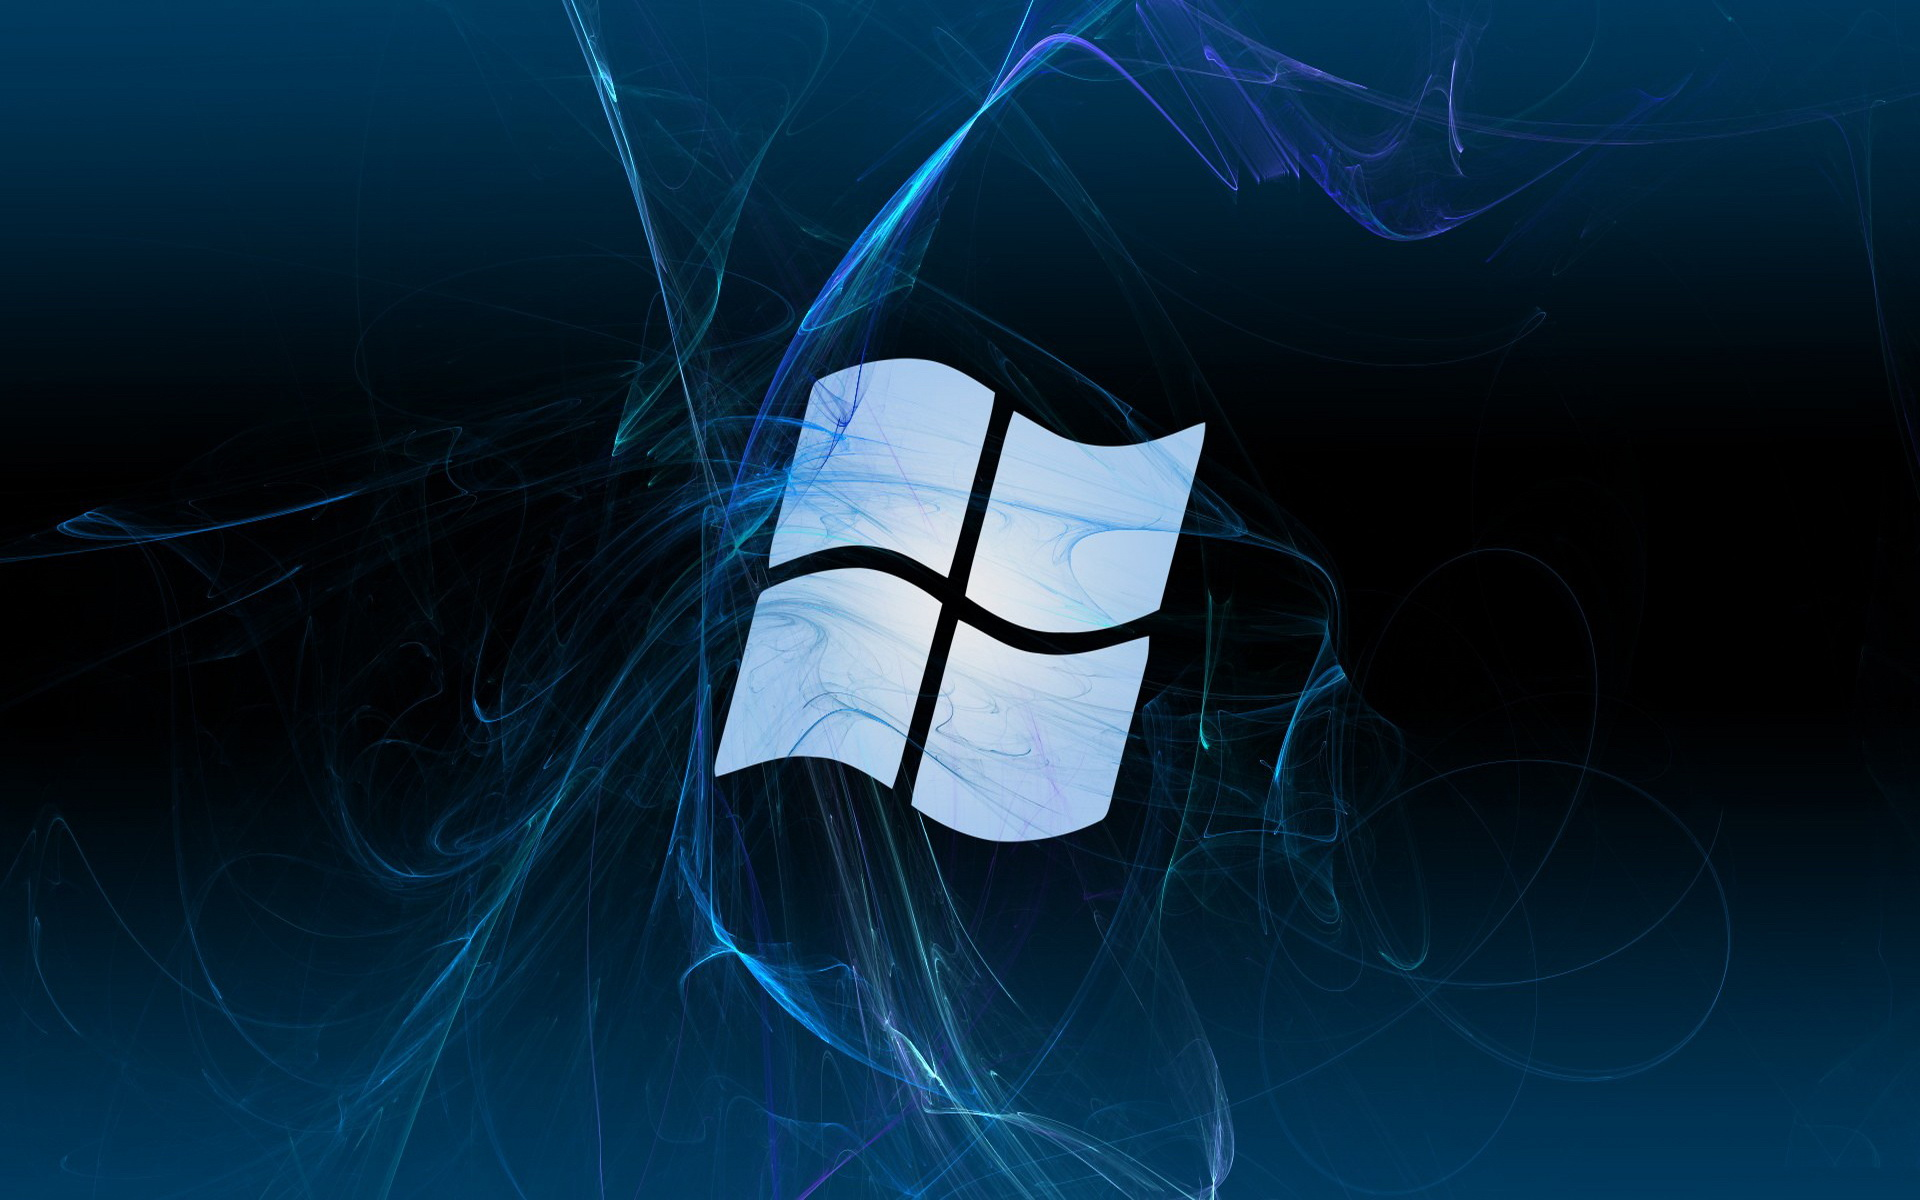 Windows Hd Wallpaper Background Image 1920x1200 Id 385464